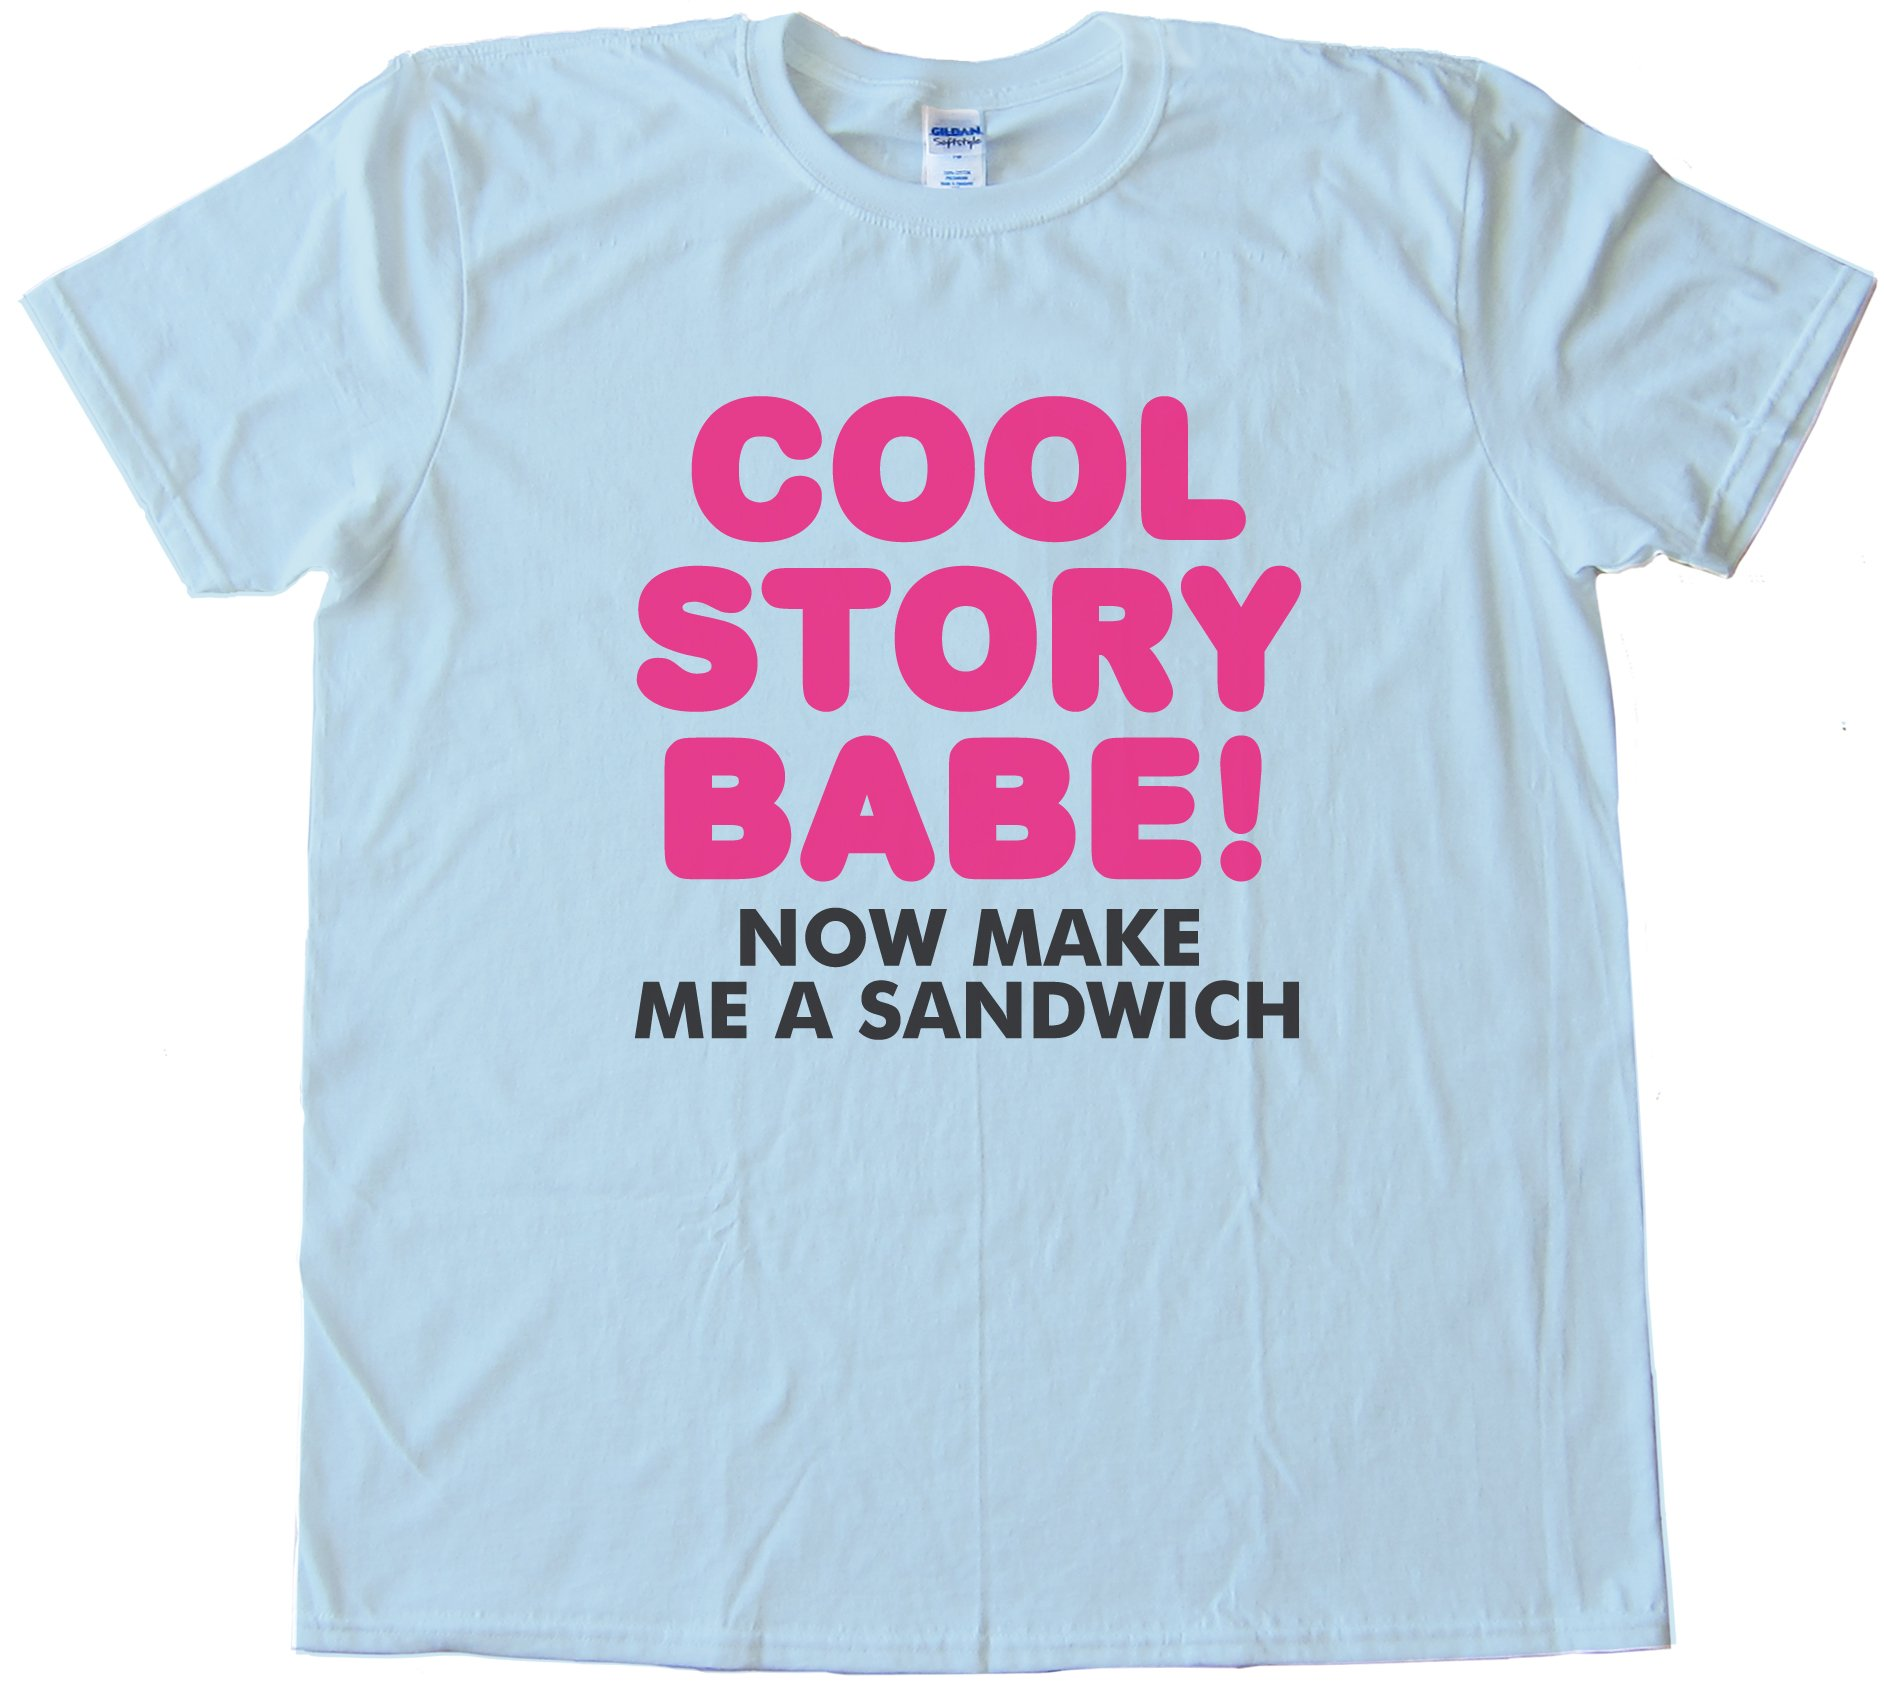 Cool Story Babe! Now Make Me A Sandwich Tee Shirt